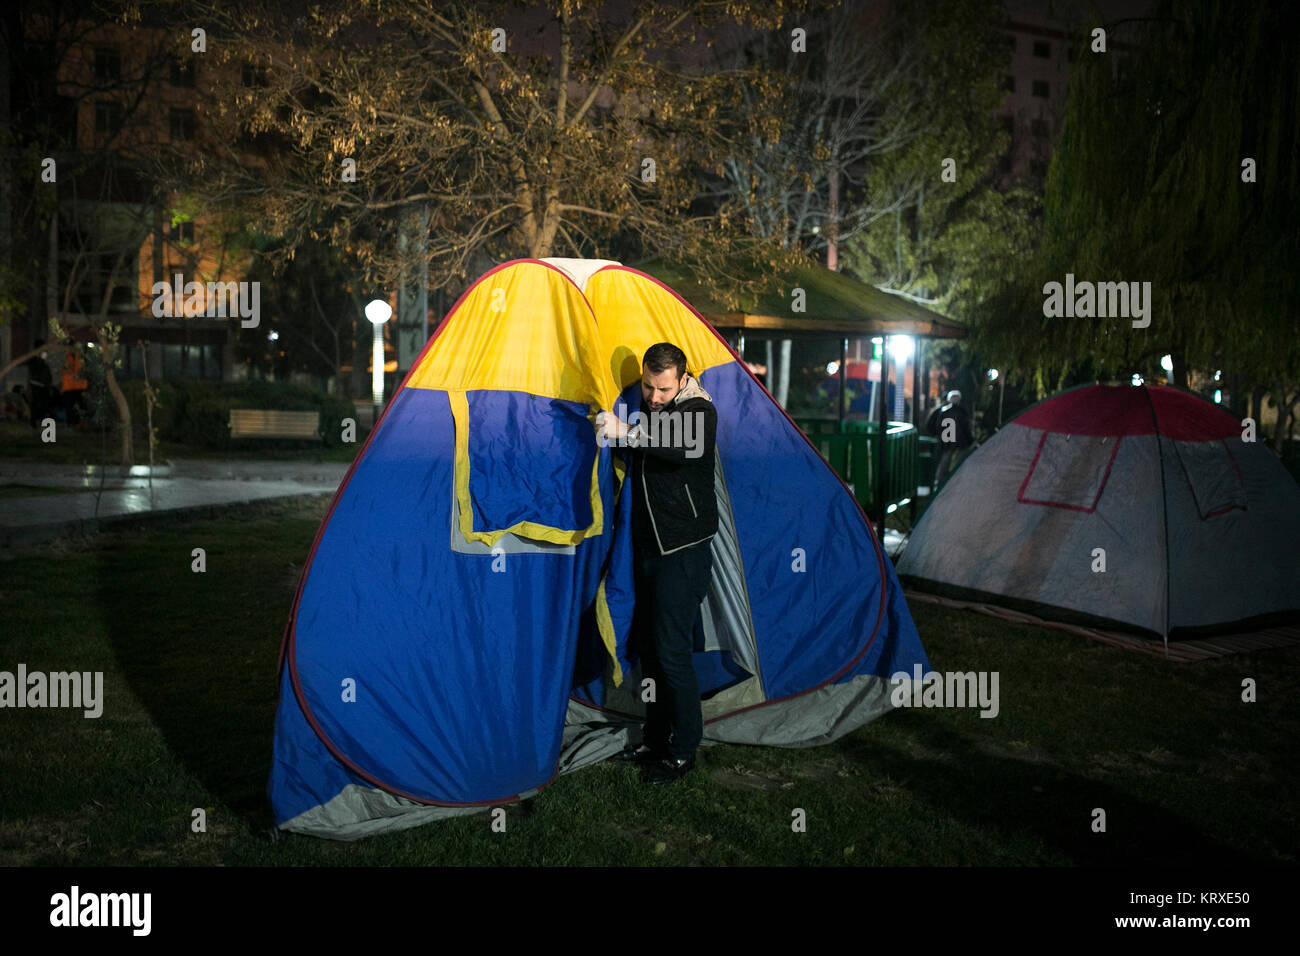 A man sets up a tent at a park after the earthquake in Tehran Iran on Dec. 21 2017. An earthquake measuring 5.2 magnitude on the Richter ... & Tehran Iran. 21st Dec 2017. A man sets up a tent at a park after ...